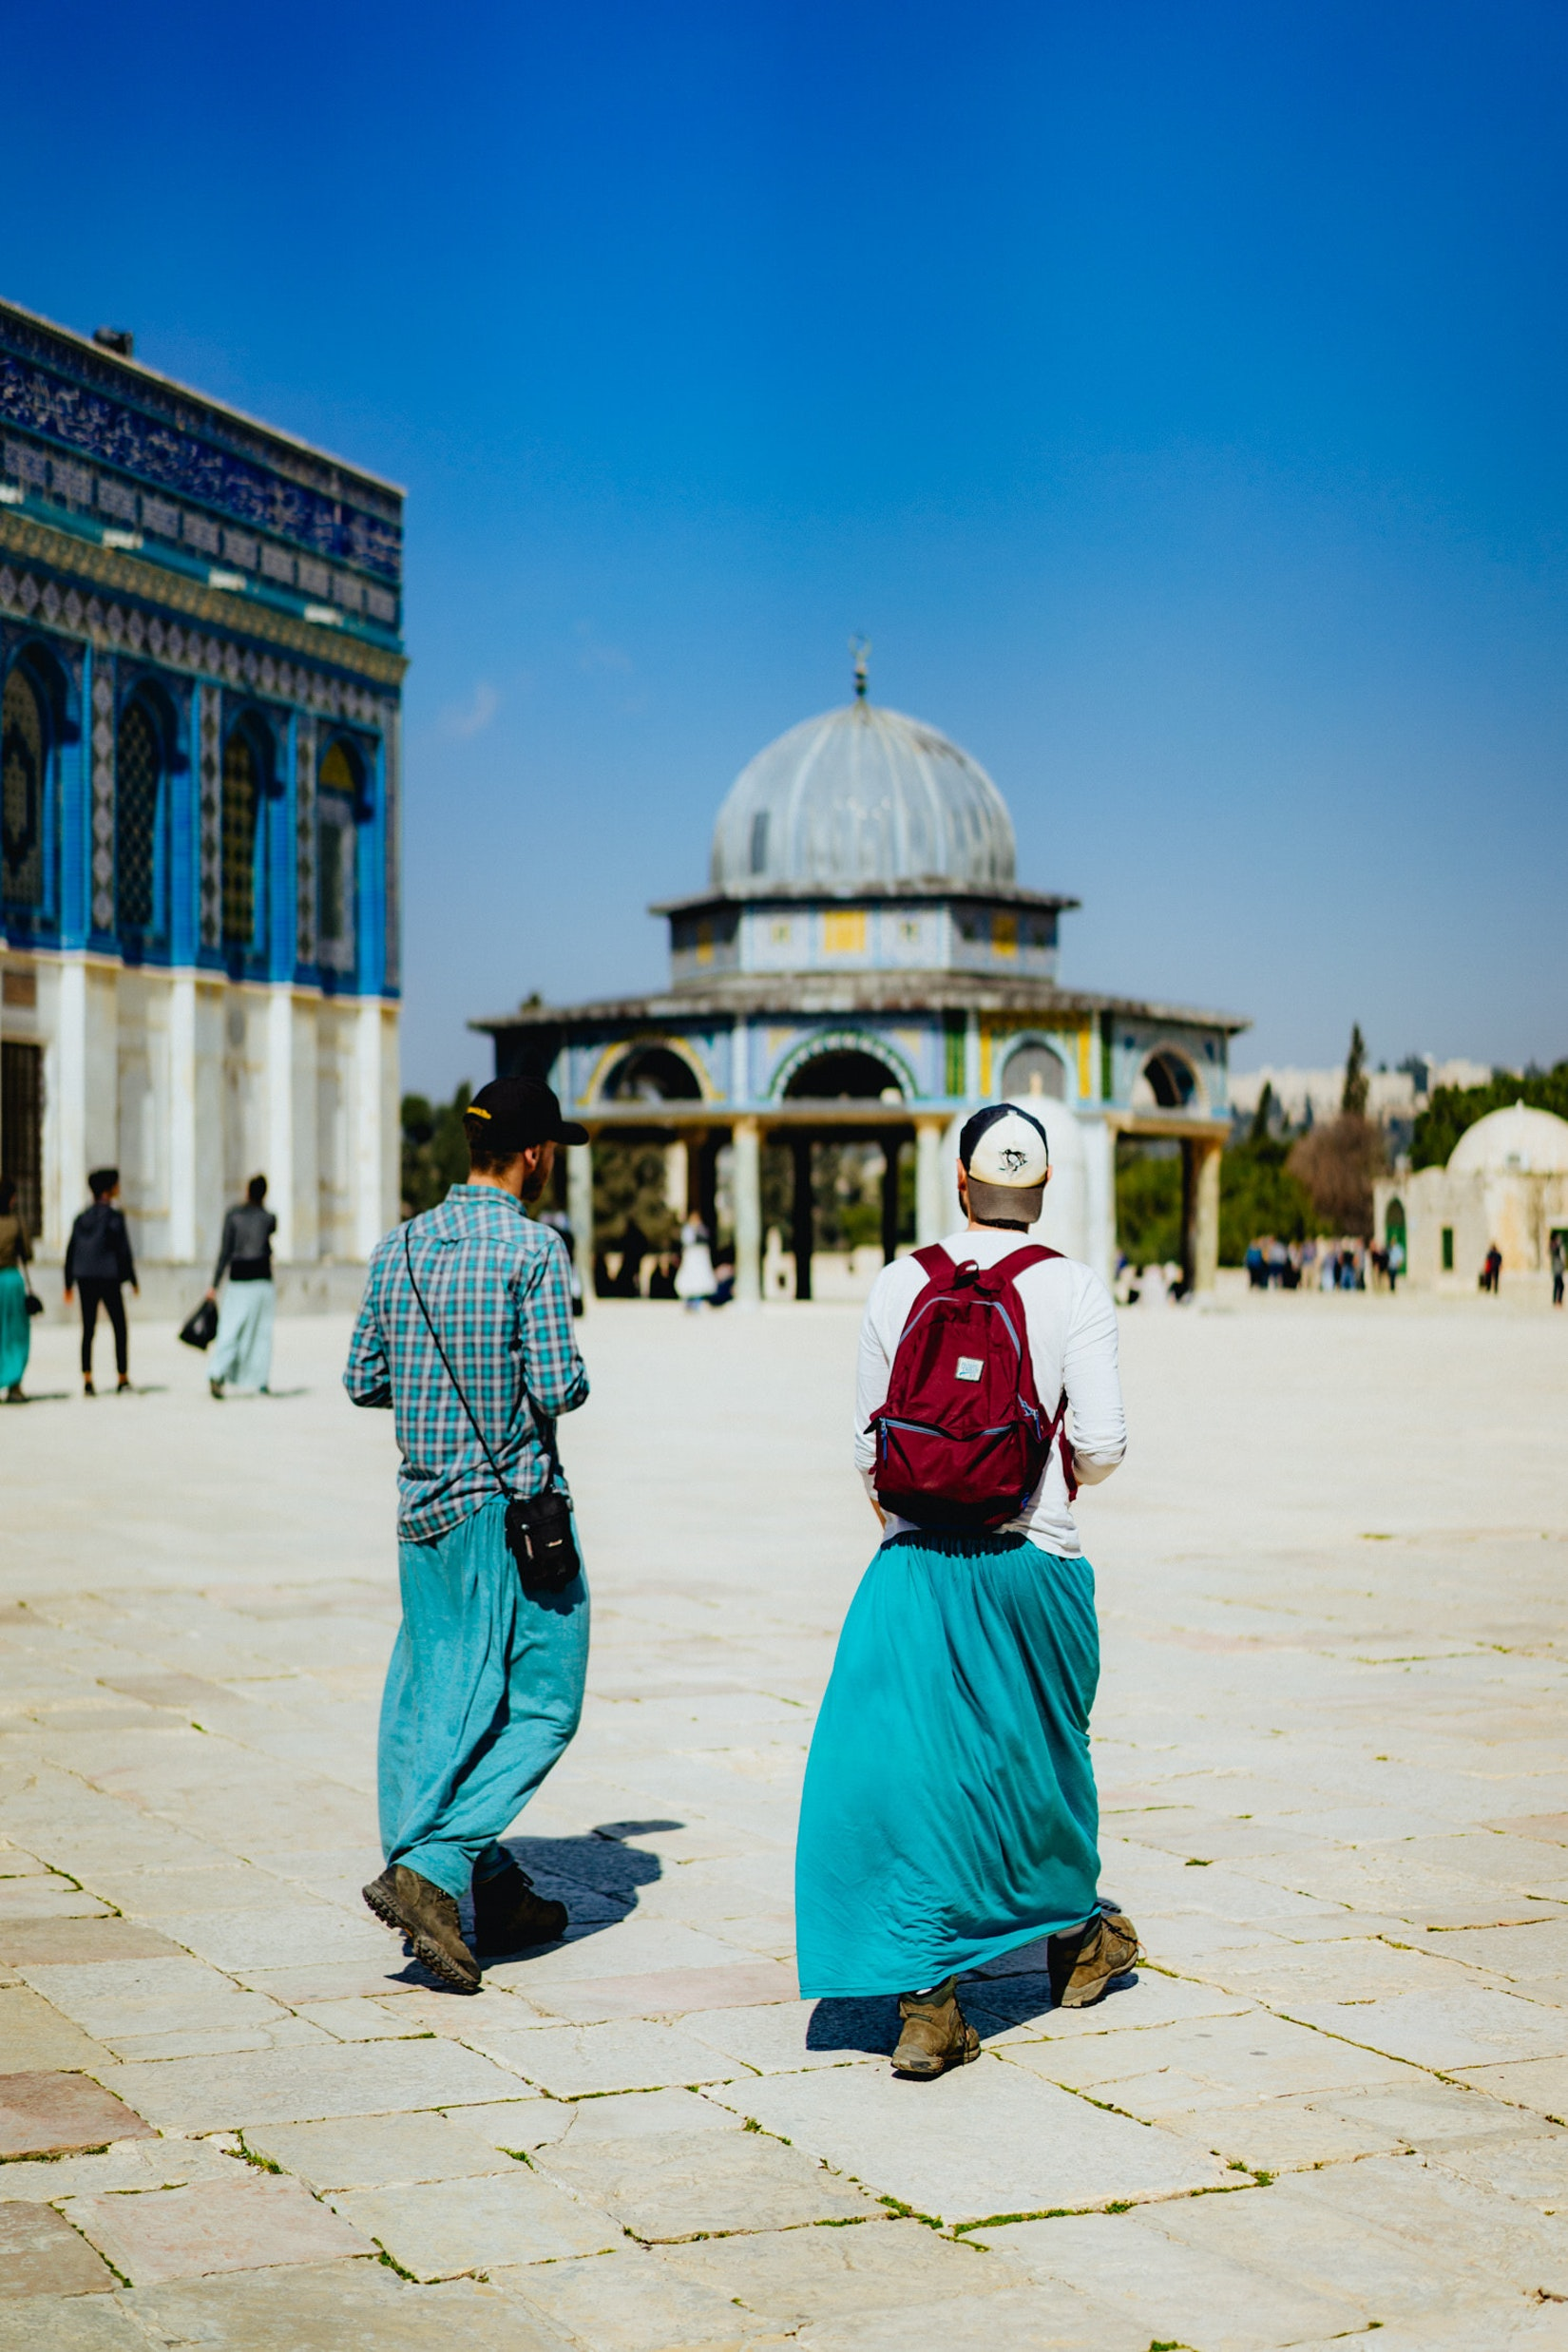 Tourists wearing teal rental skirts at the Dome of the Rock in Jerusalem, Israel